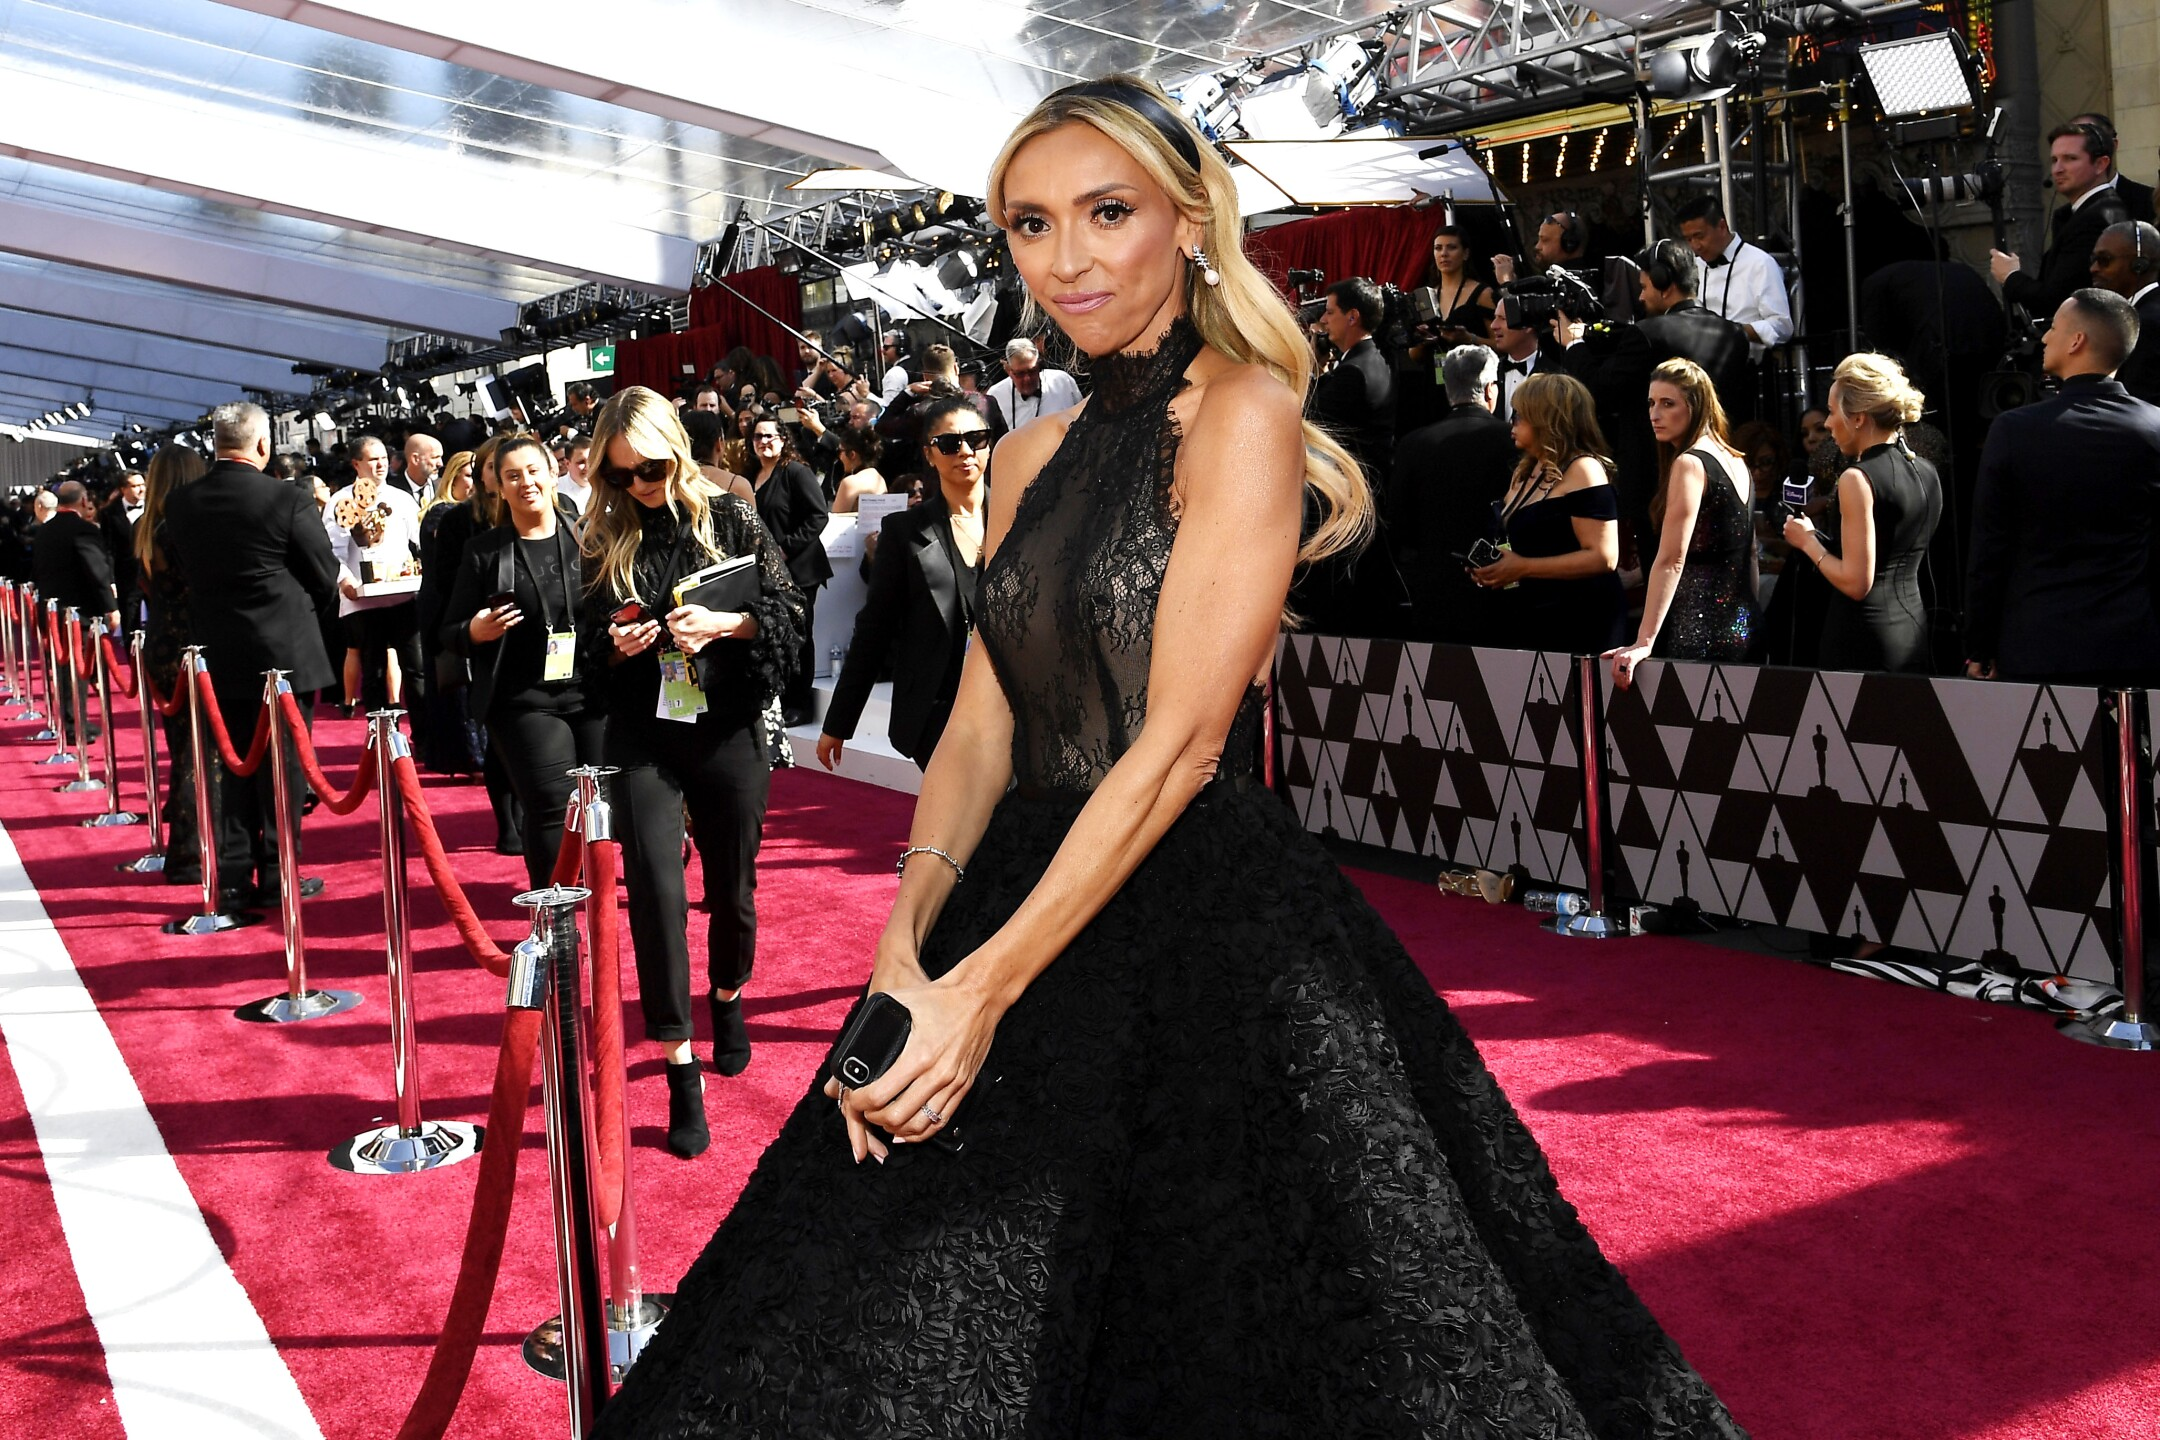 Oscars Red Carpet 2019: Hollywood's biggest stars arrive on Red Carpet before Oscars